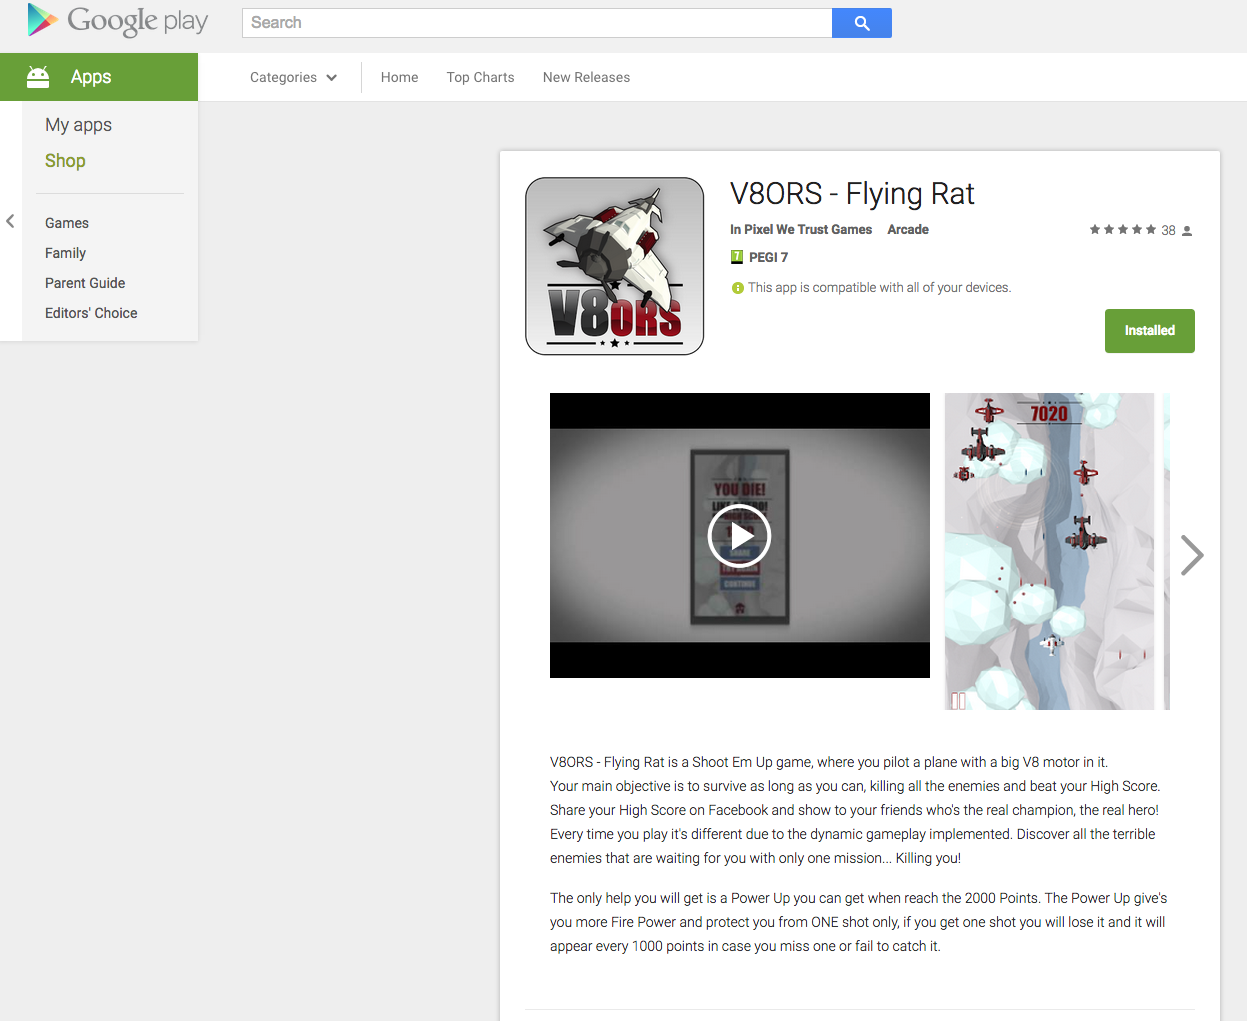 V8ORS-Flying Rat Google Play